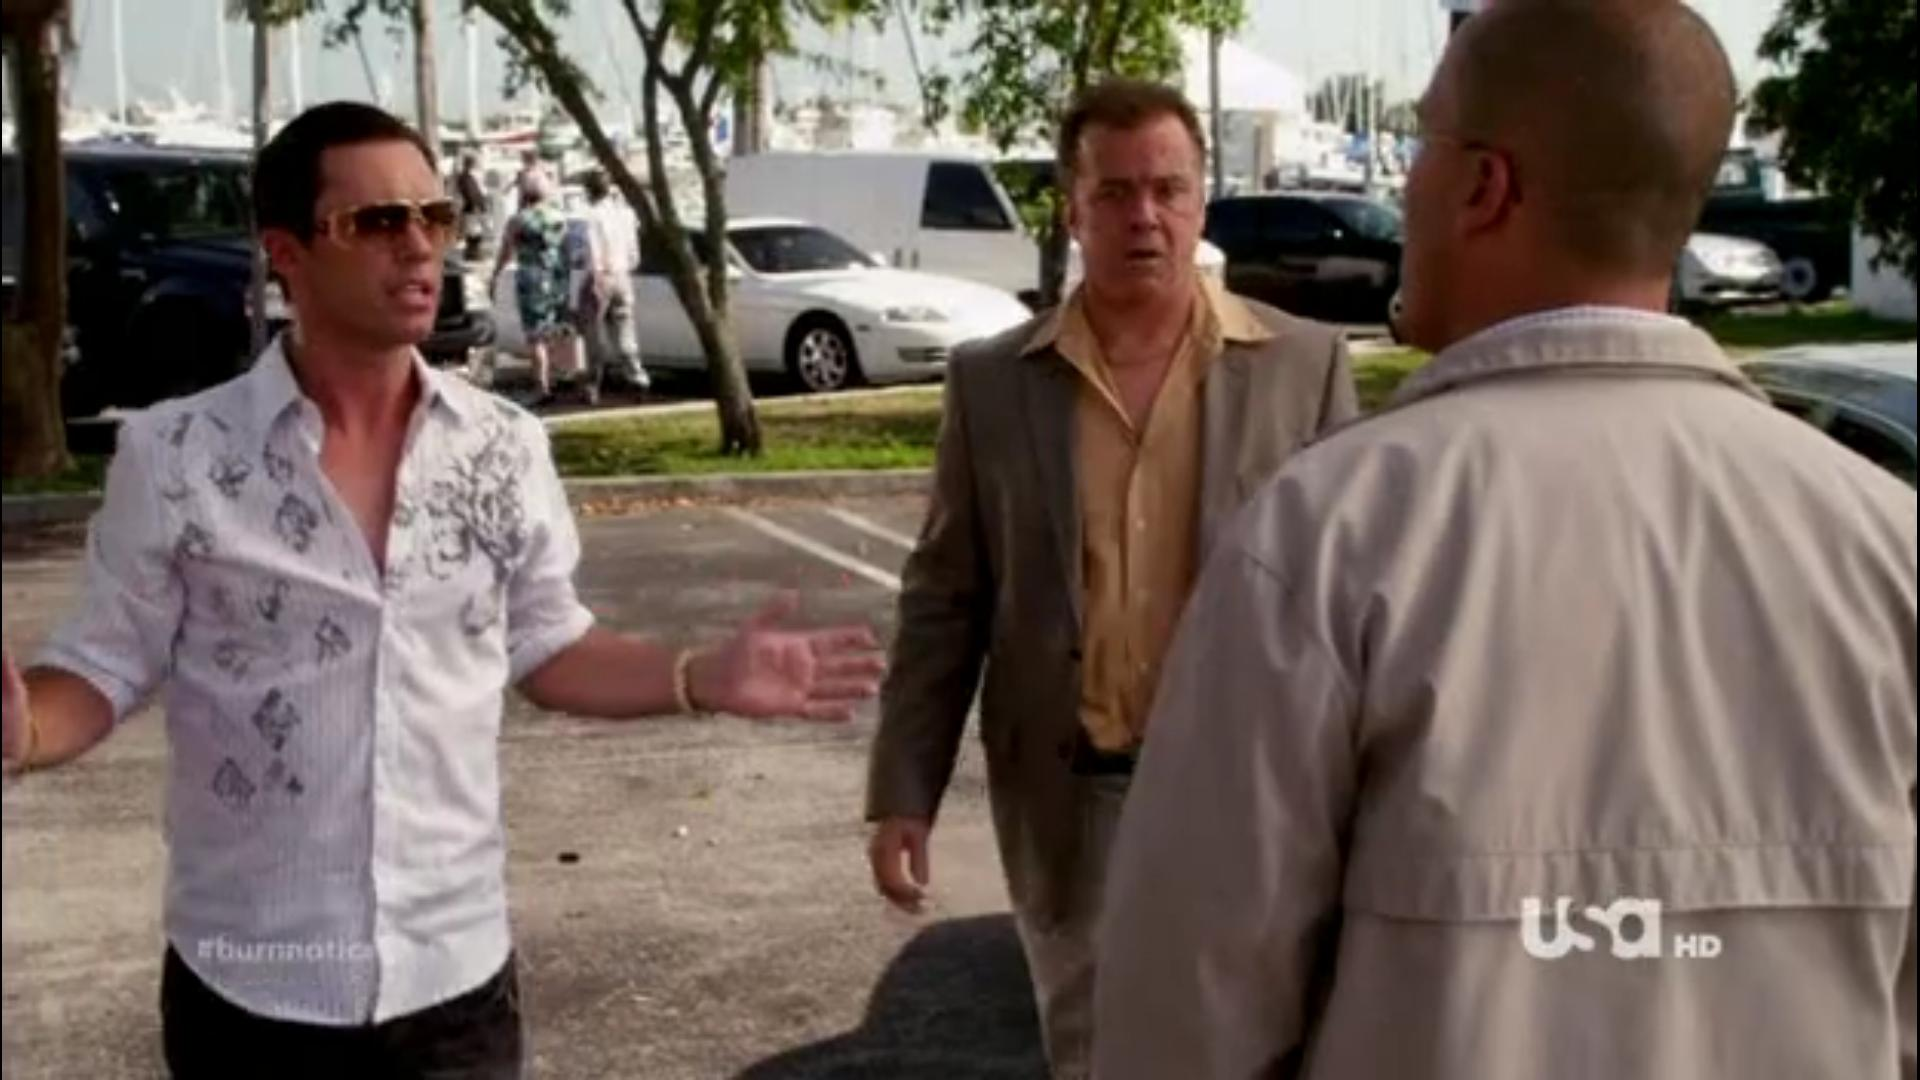 Burn notice season 5 episode 3 cucirca / Untouchable japanese drama wiki